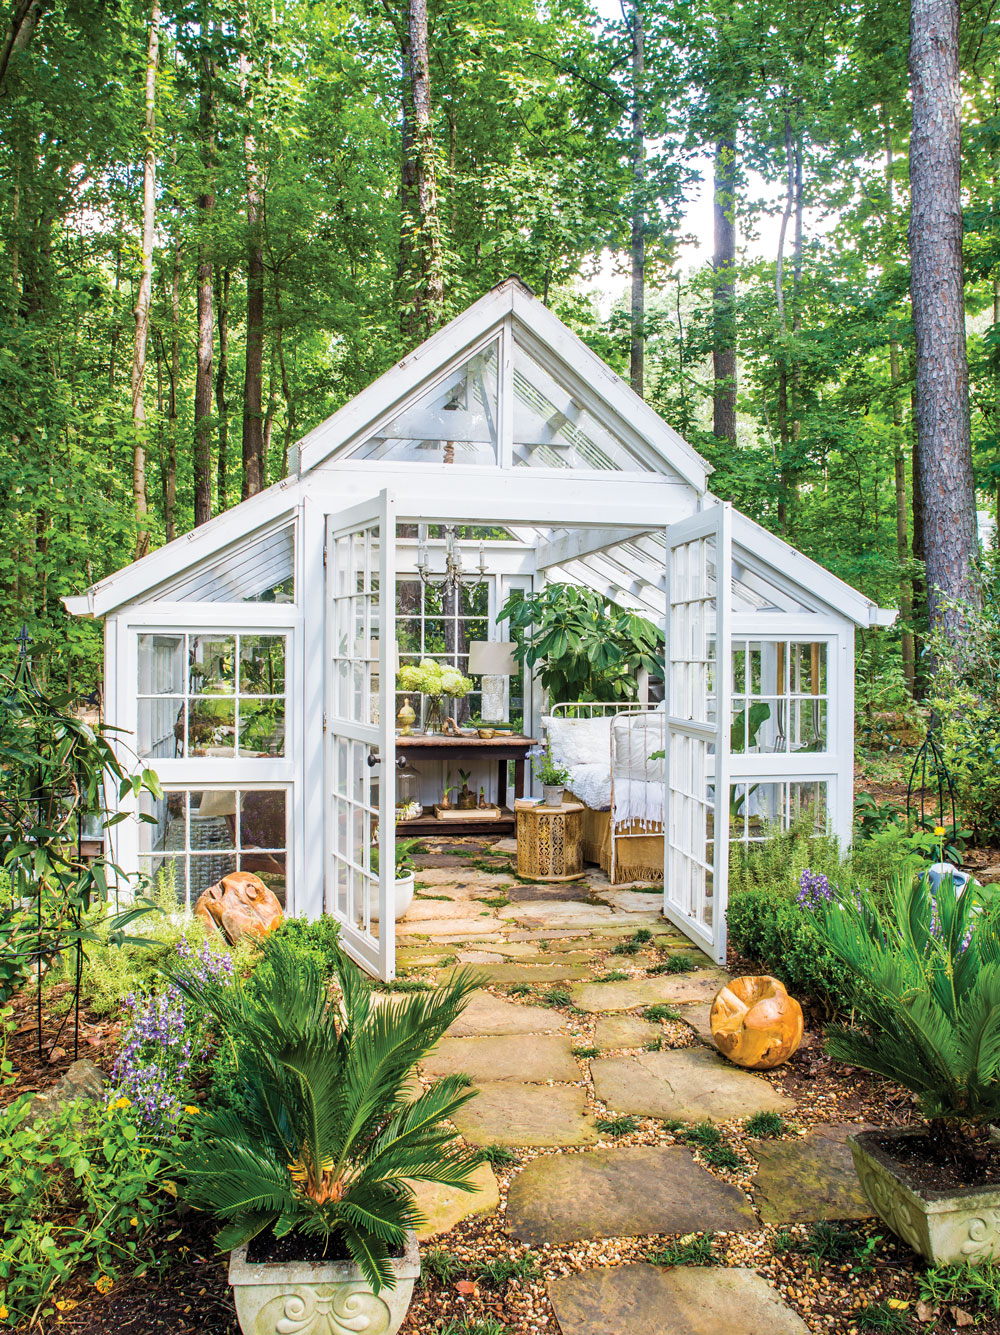 Room Envy: This glass garden house in Marietta is a ... on Mansion Backyard Ideas id=15799